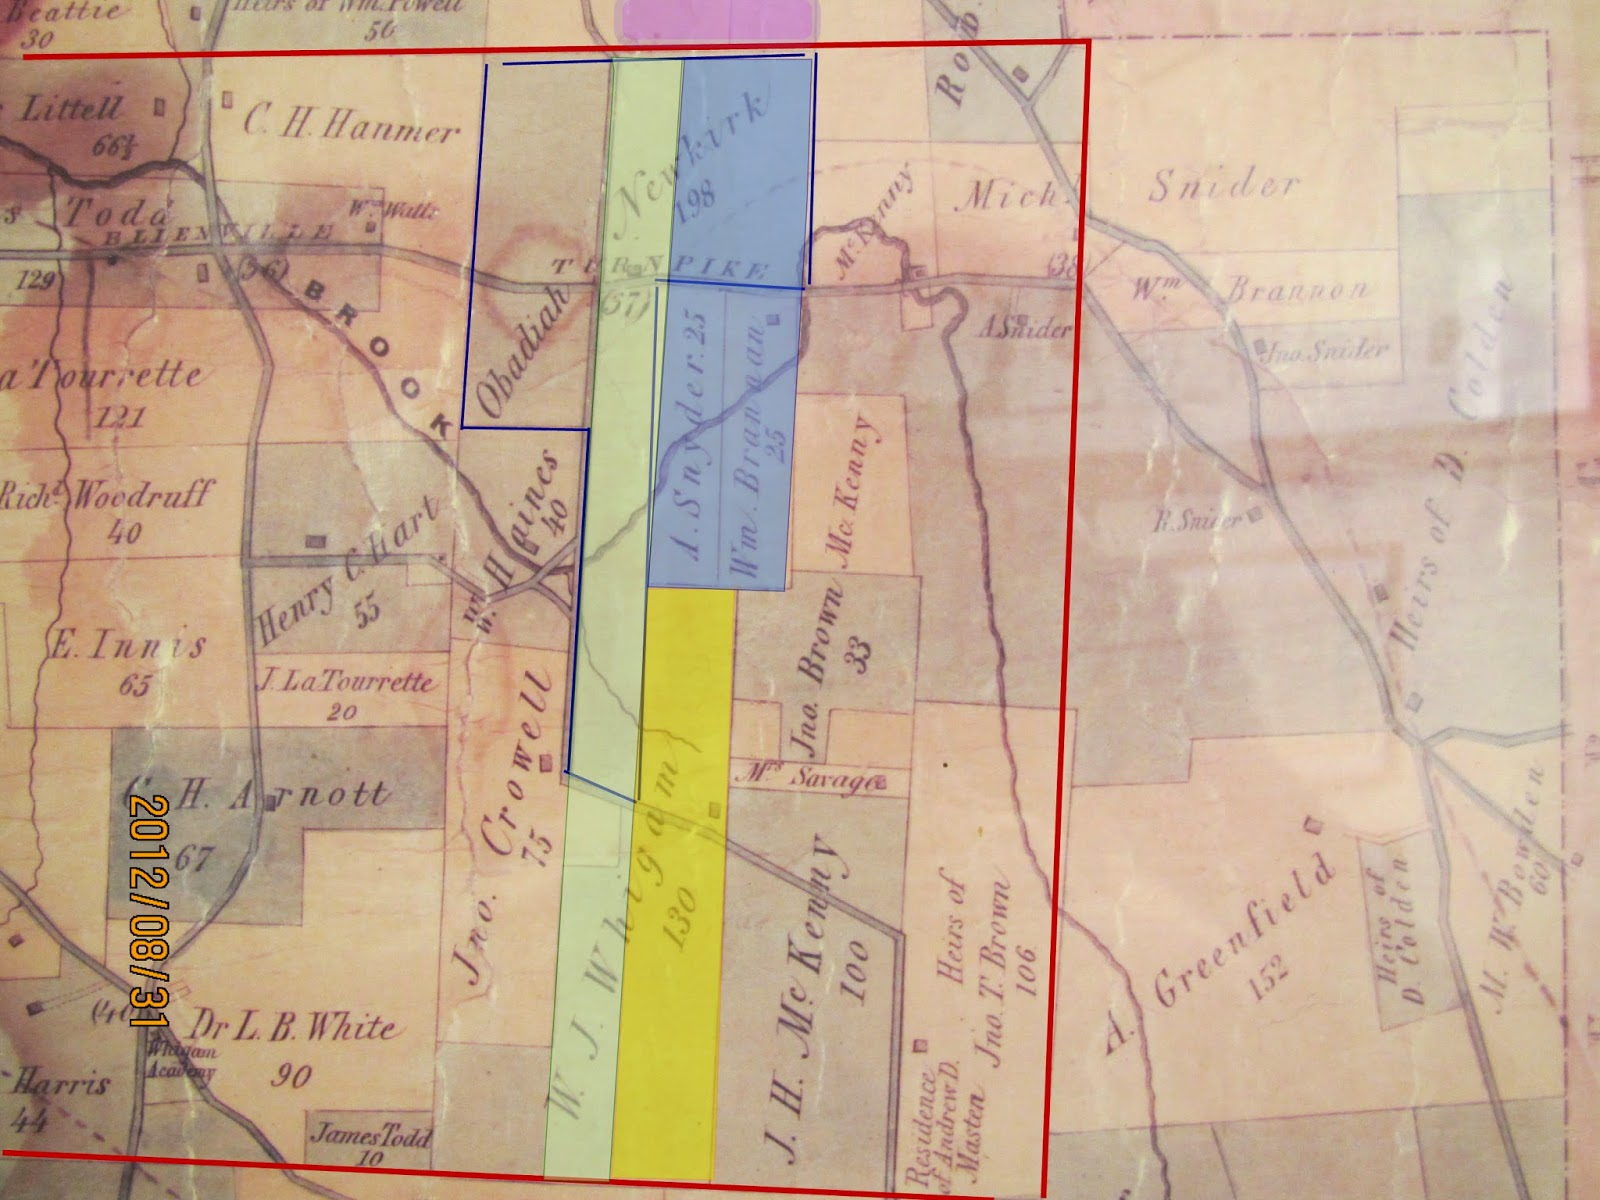 1862 map with 1783 wood green 1771 wood yellow and 1760 perry blue deed information the estimate of the campbell property is in purple at the very